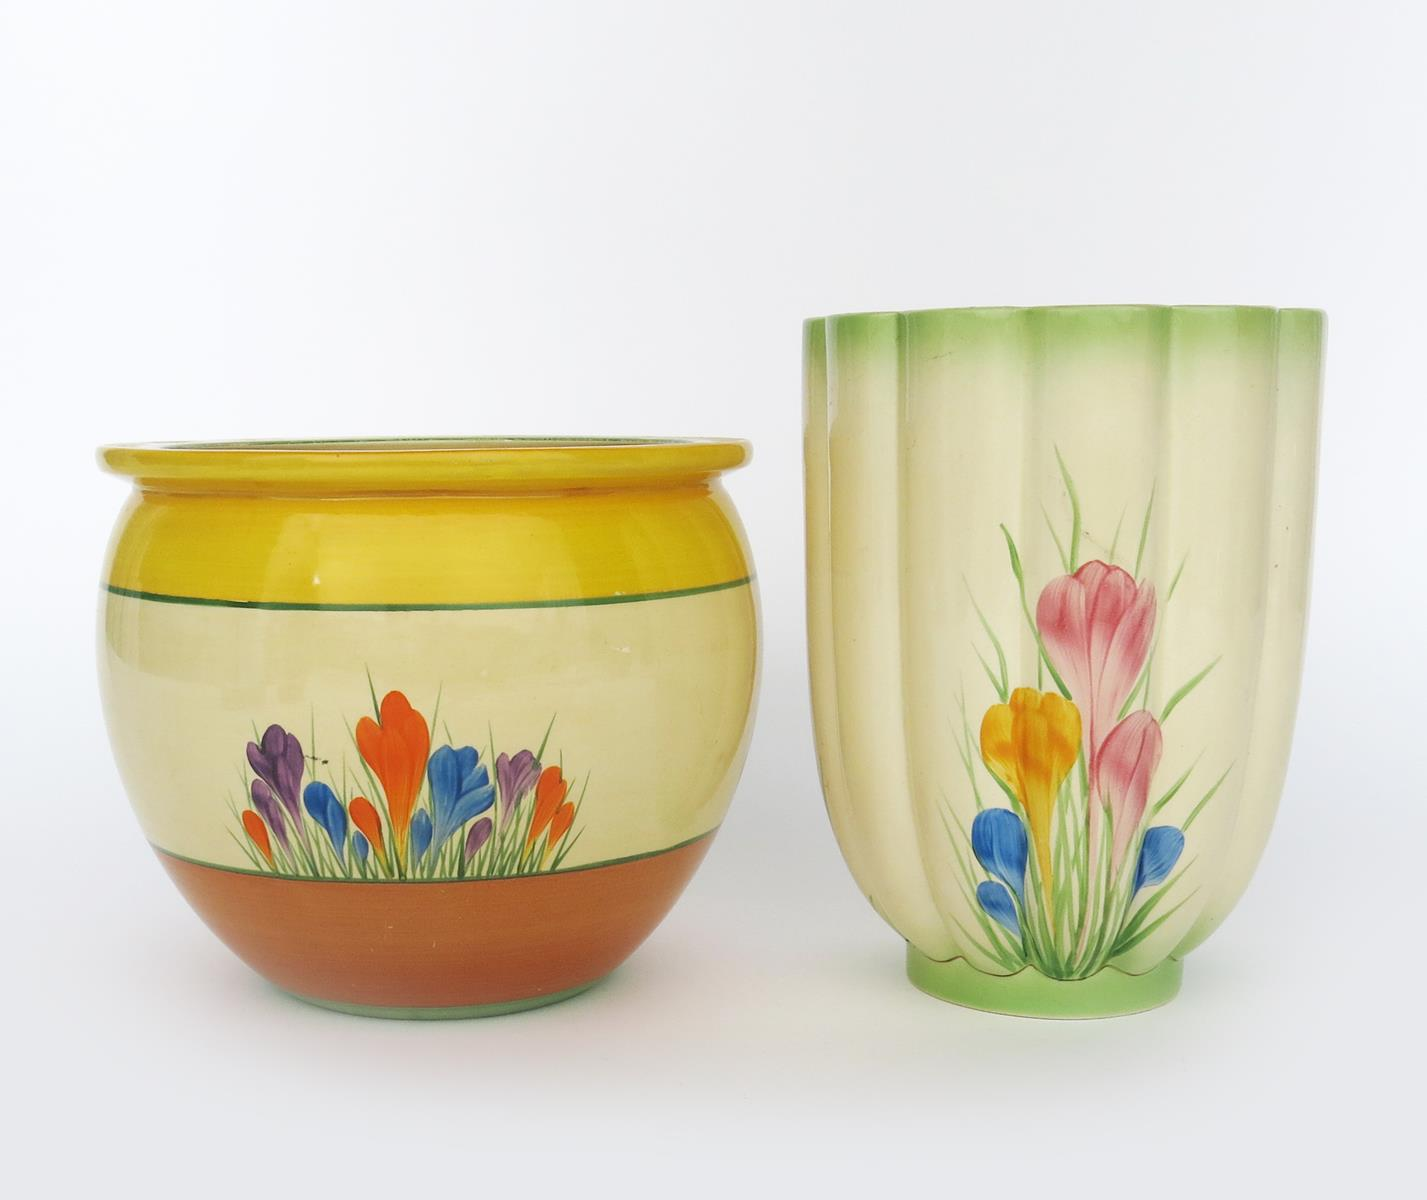 'Crocus' a Clarice Cliff jardiniere, painted in colours between yellow and brown bands, and a